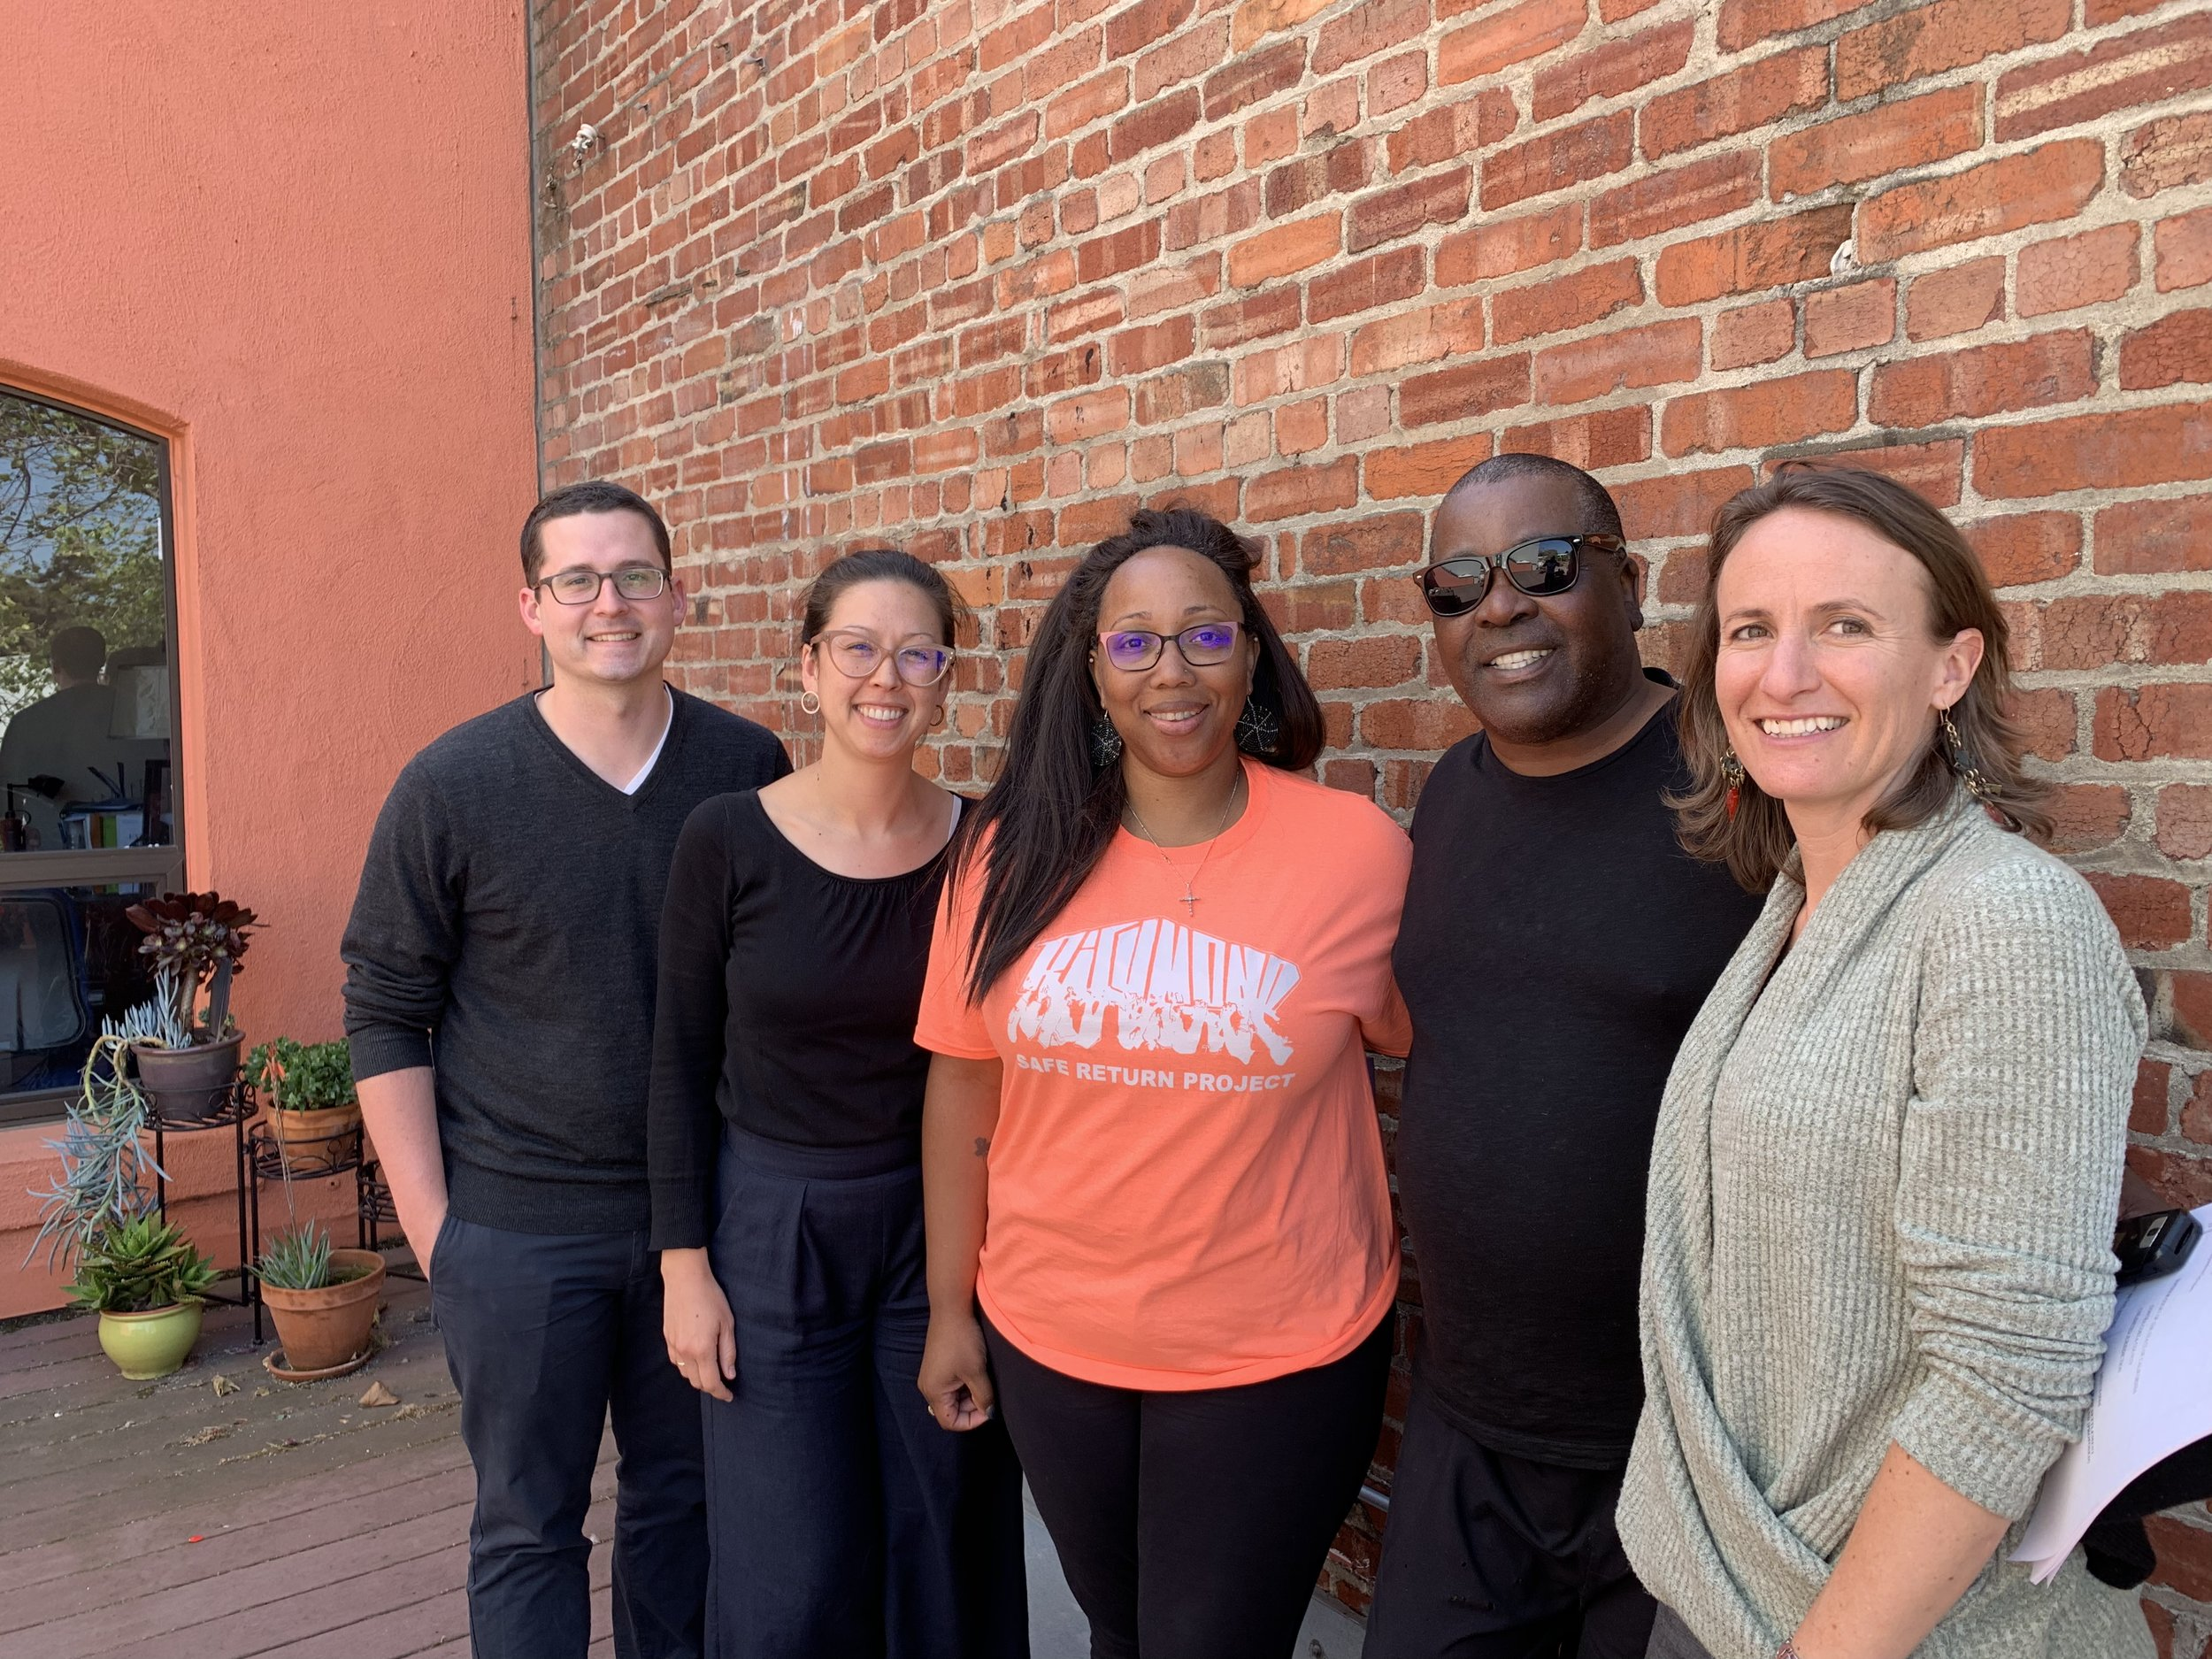 (L to R): Daniel Nesbit, Impact Fund, Law Fellow; Lindsay Nako, Impact Fund, Director of Litigation & Training; Tamisha Walker, Plaintiff Safe Return Project, Executive Director; Plaintiff Walter Killian; Rebekah Evenson, Bay Area Legal Aid, Director of Litigation & Advocacy